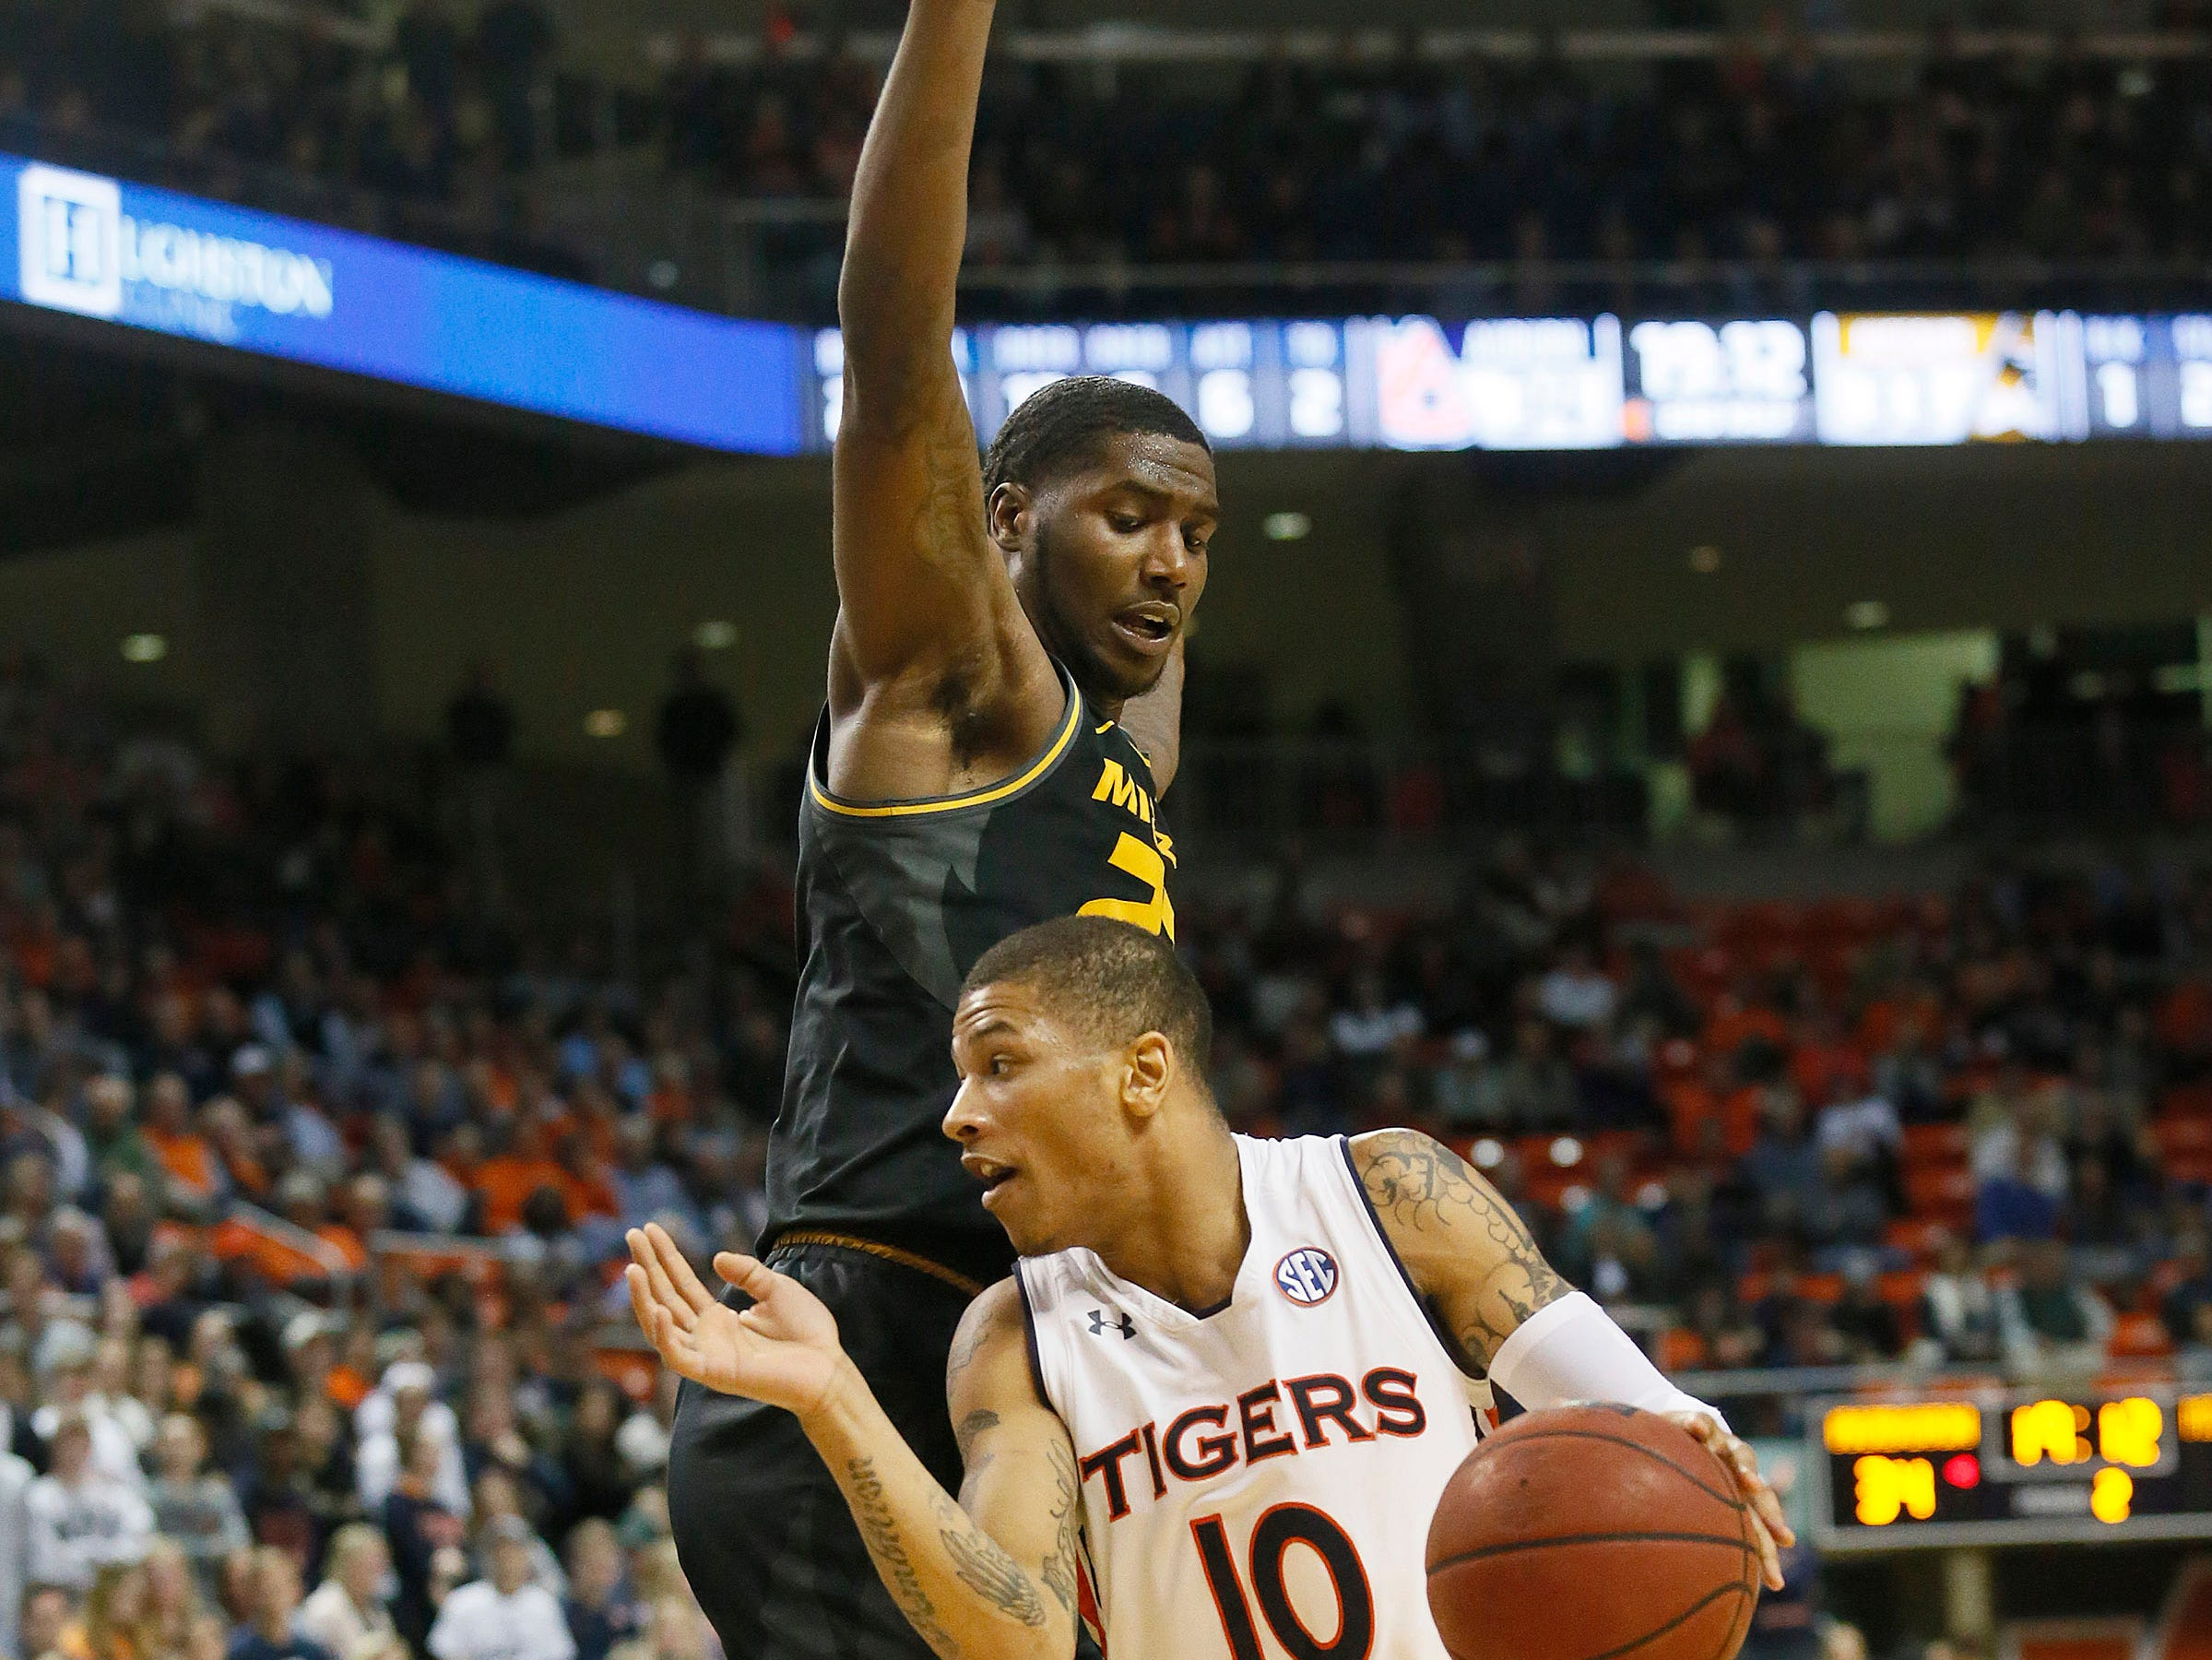 Jan 30, 2019; Auburn, AL, USA; Missouri Tigers forward Jeremiah Tilmon (23) tries to block Auburn Tigers guard Samir Doughty (10) during the second half at Auburn Arena. Mandatory Credit: John Reed-USA TODAY Sports